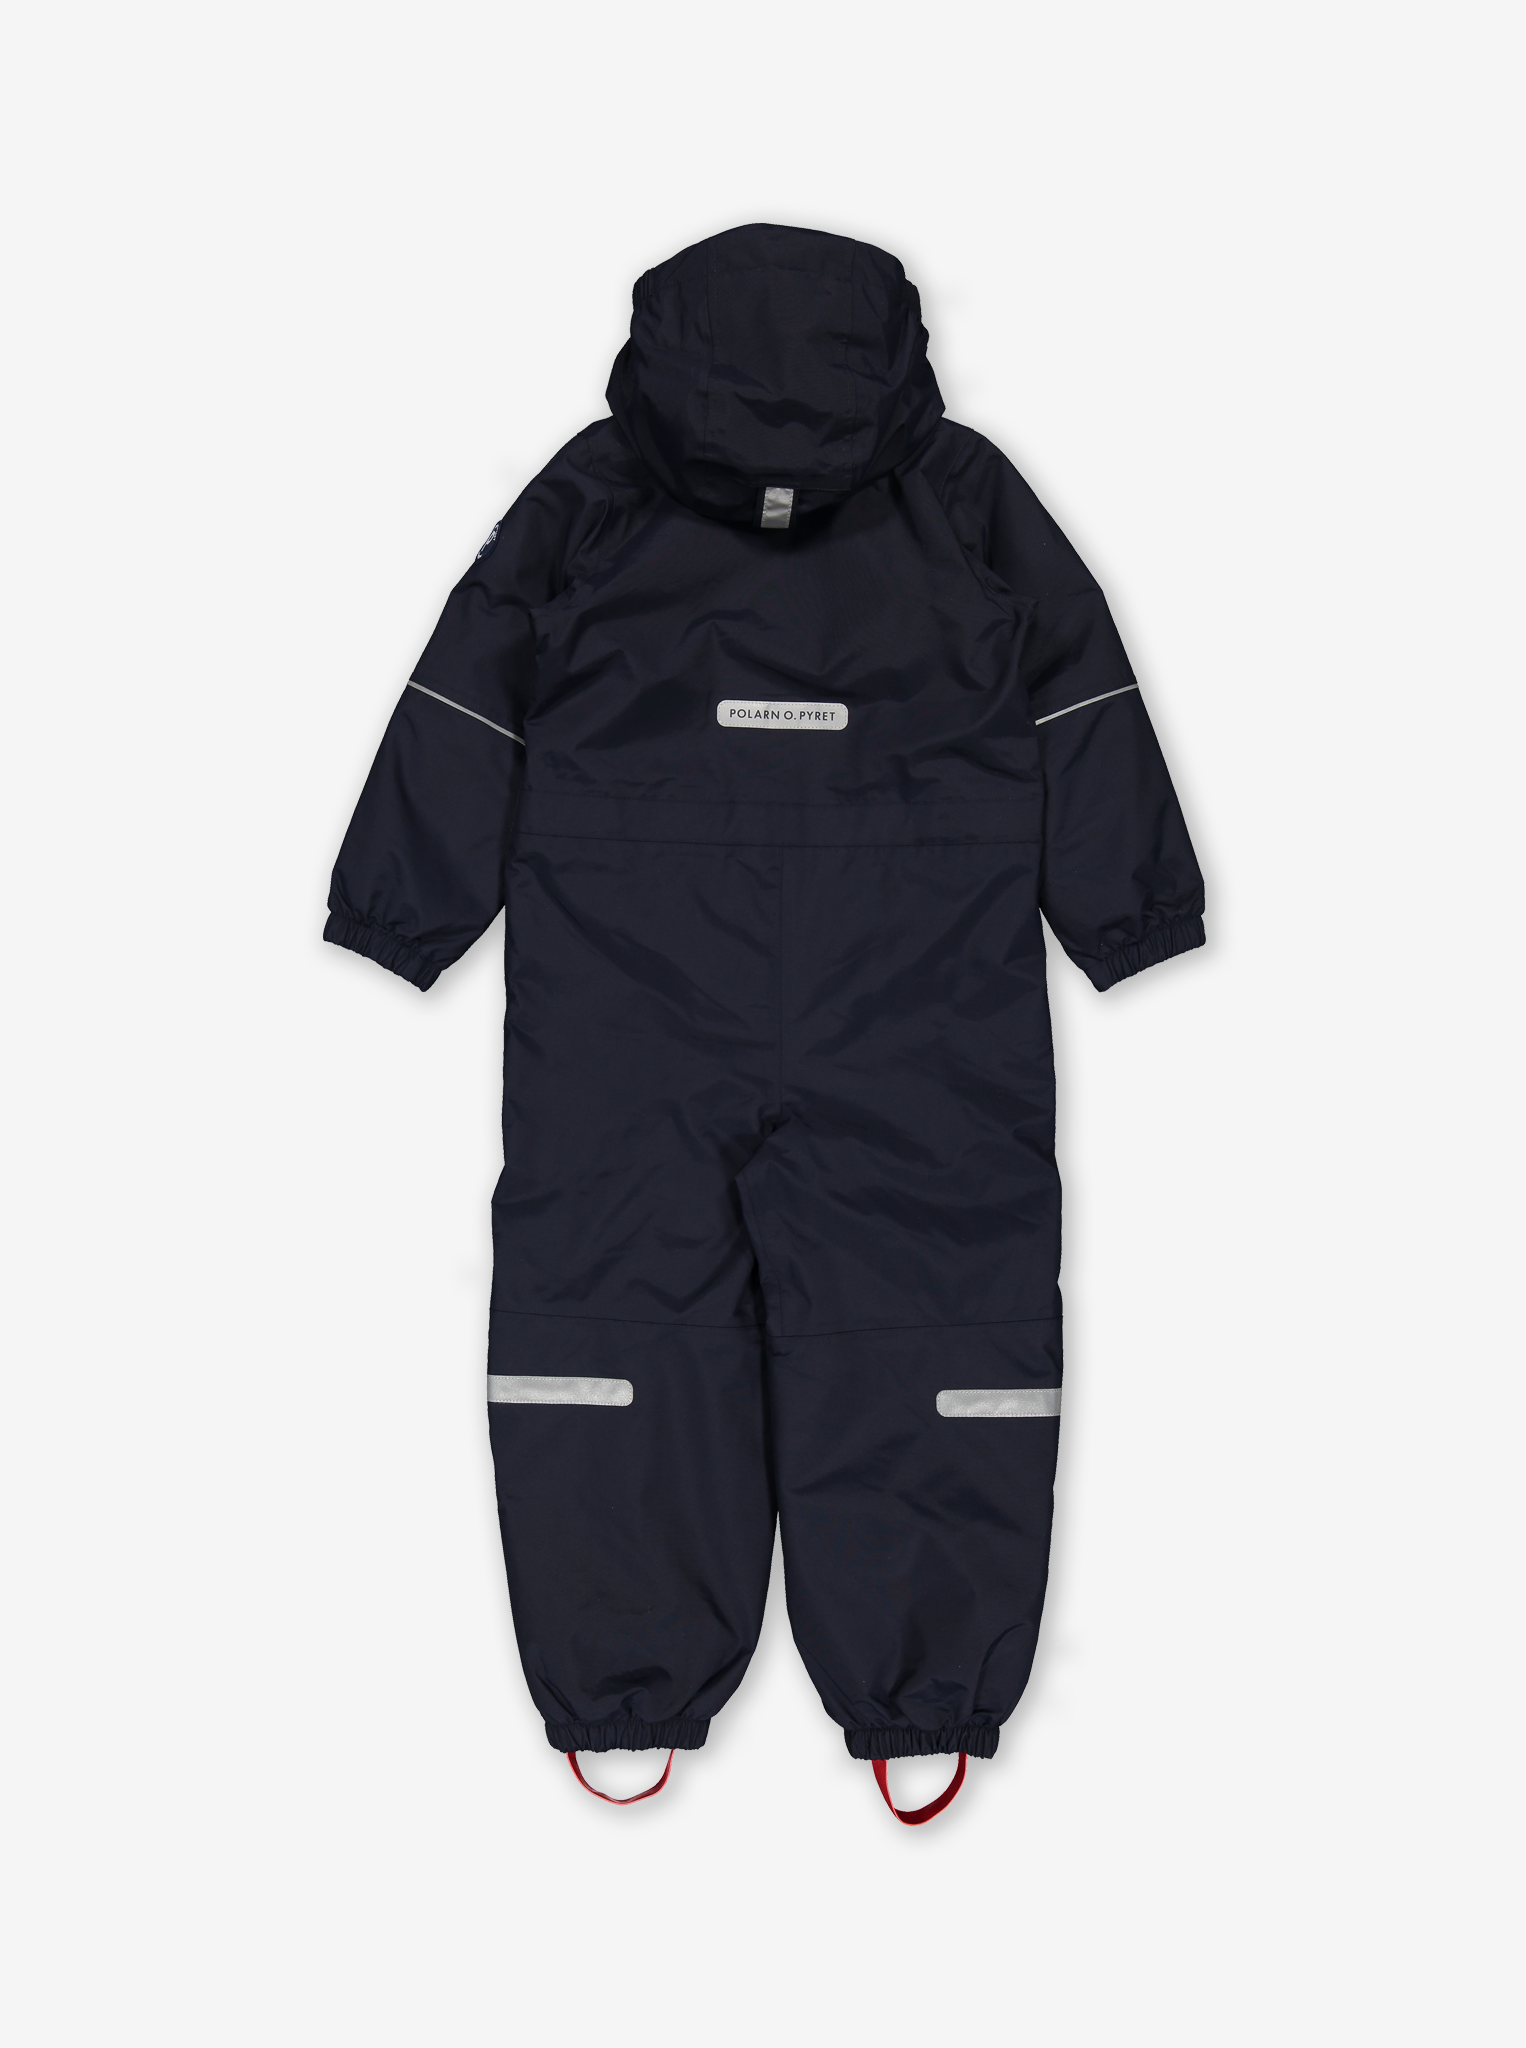 Waterproof Shell Fleece Lined Kids Overall-Unisex-Blue-2-8y